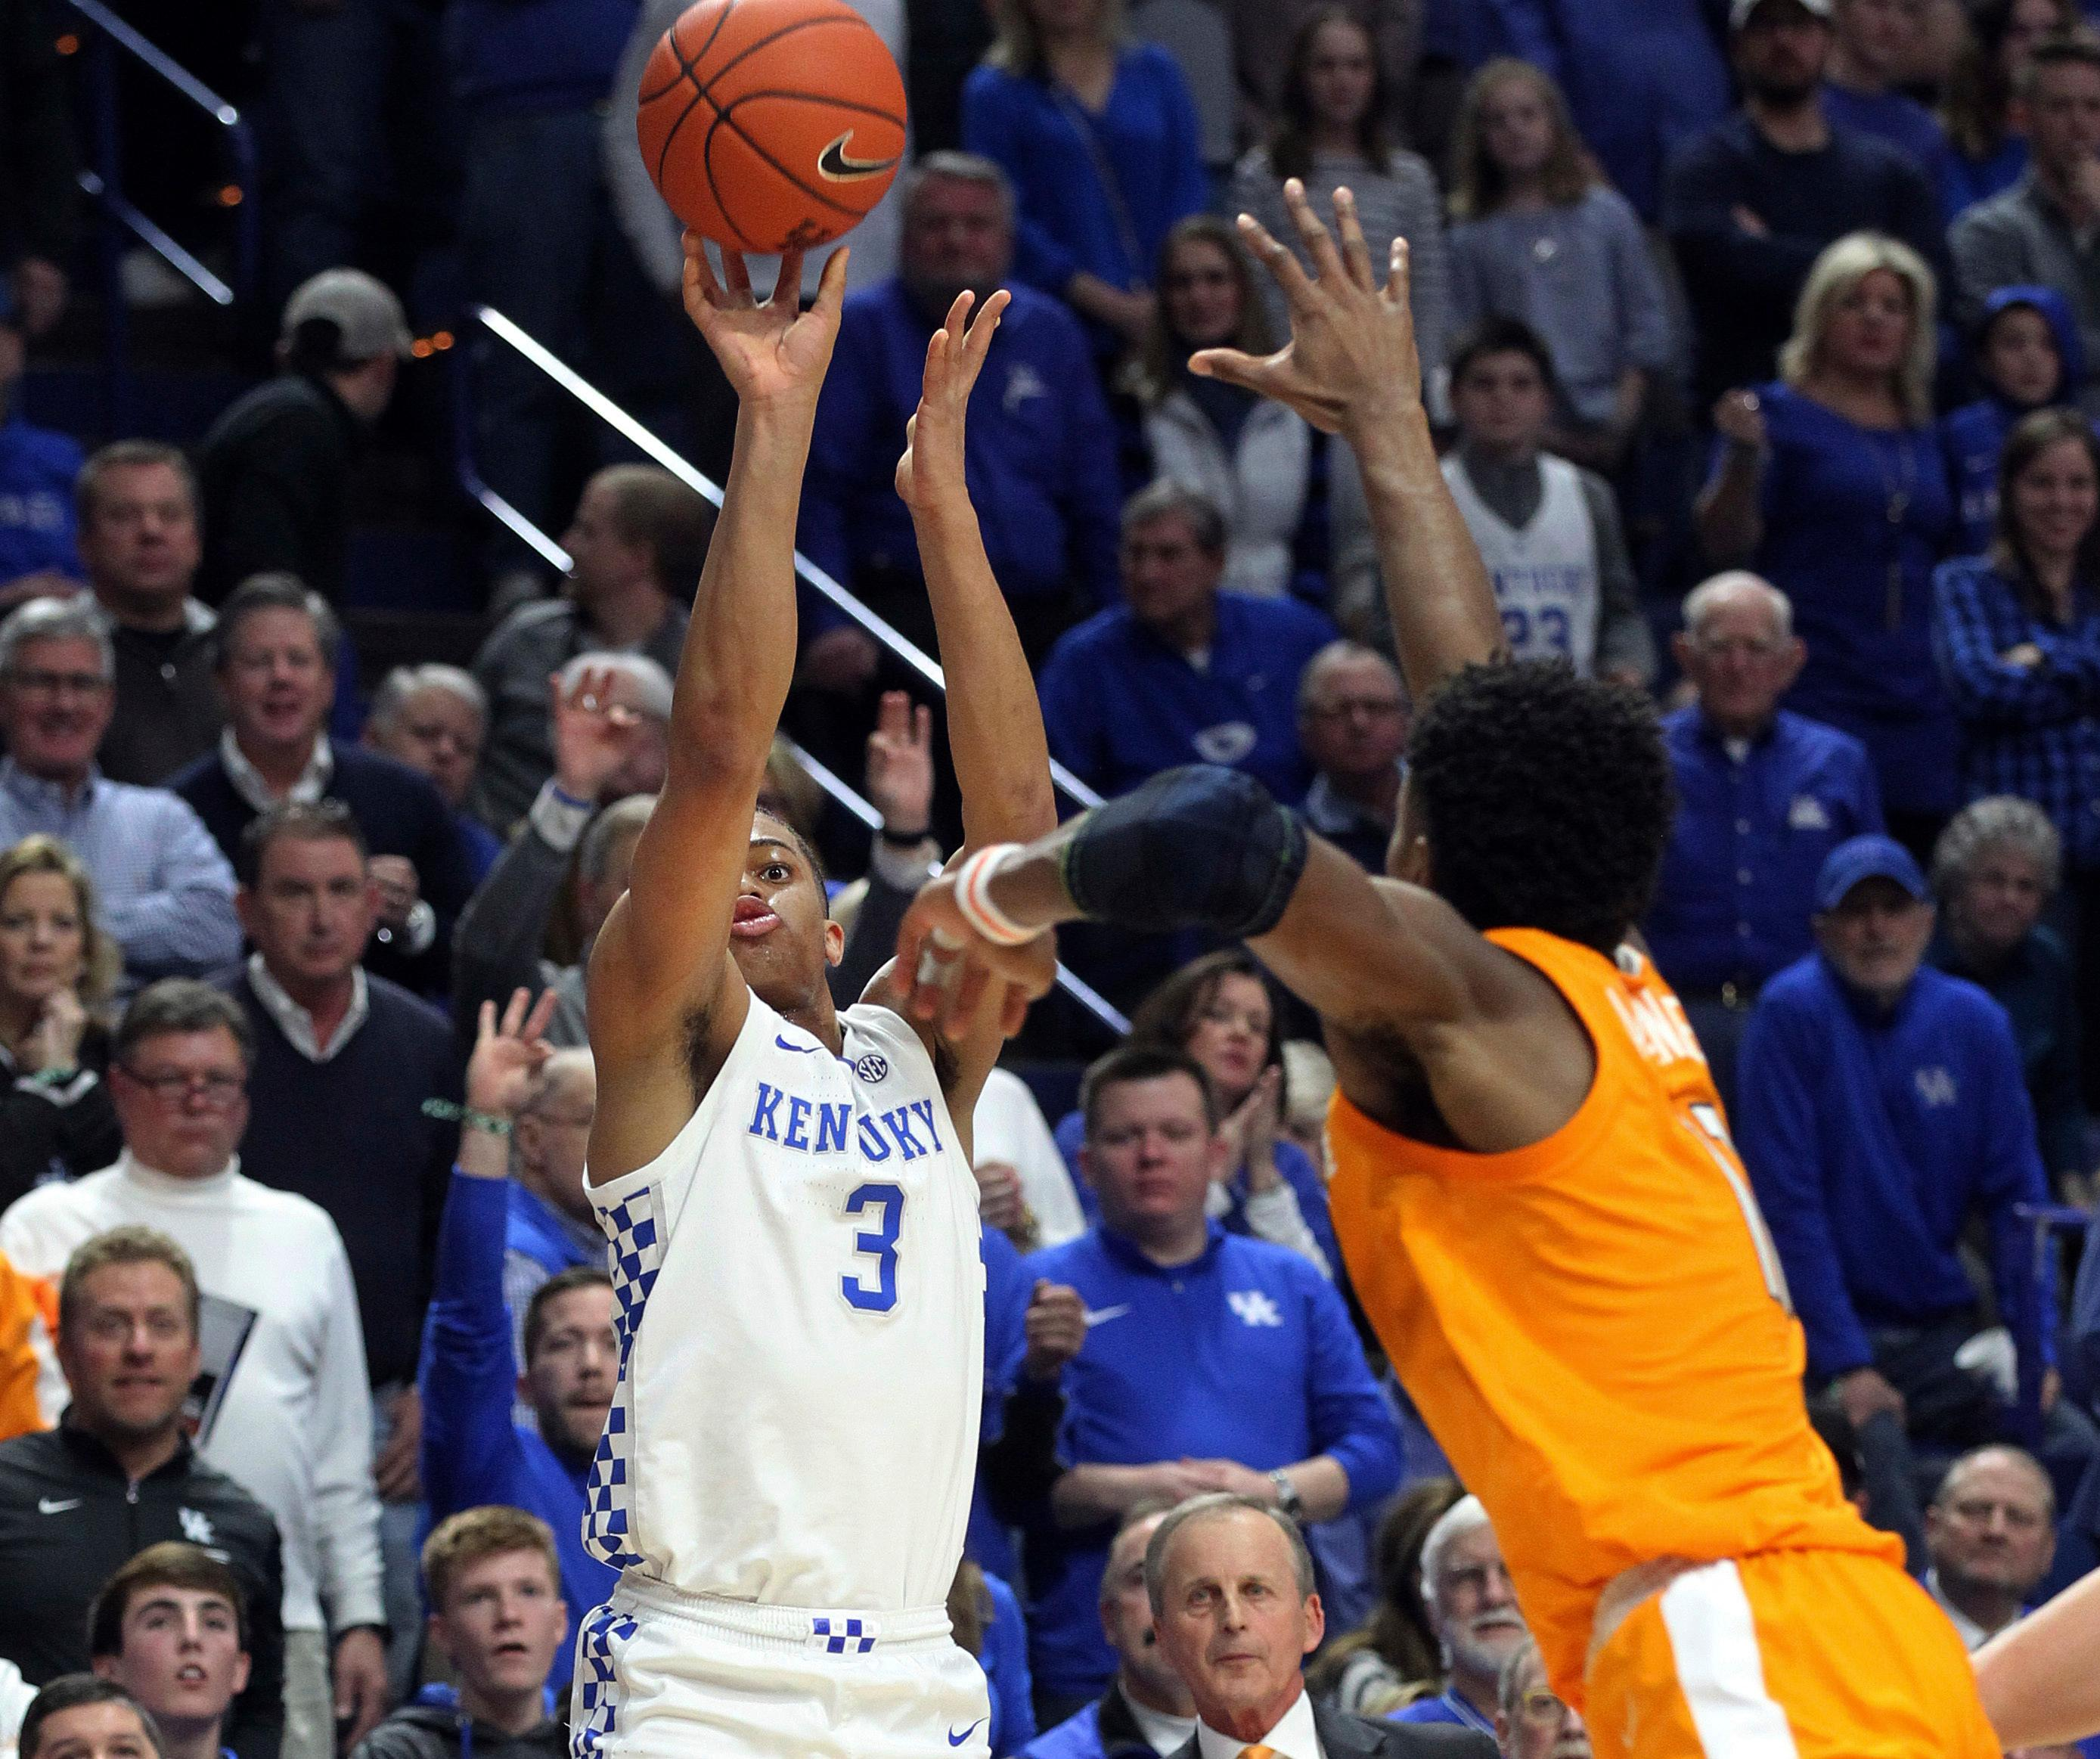 Kentucky's Keldon Johnson (3) shoots while defended by Tennessee's Kyle Alexander during the first half of an NCAA college basketball game in Lexington, Ky., Saturday, Feb. 16, 2019. (AP Photo/James Crisp)